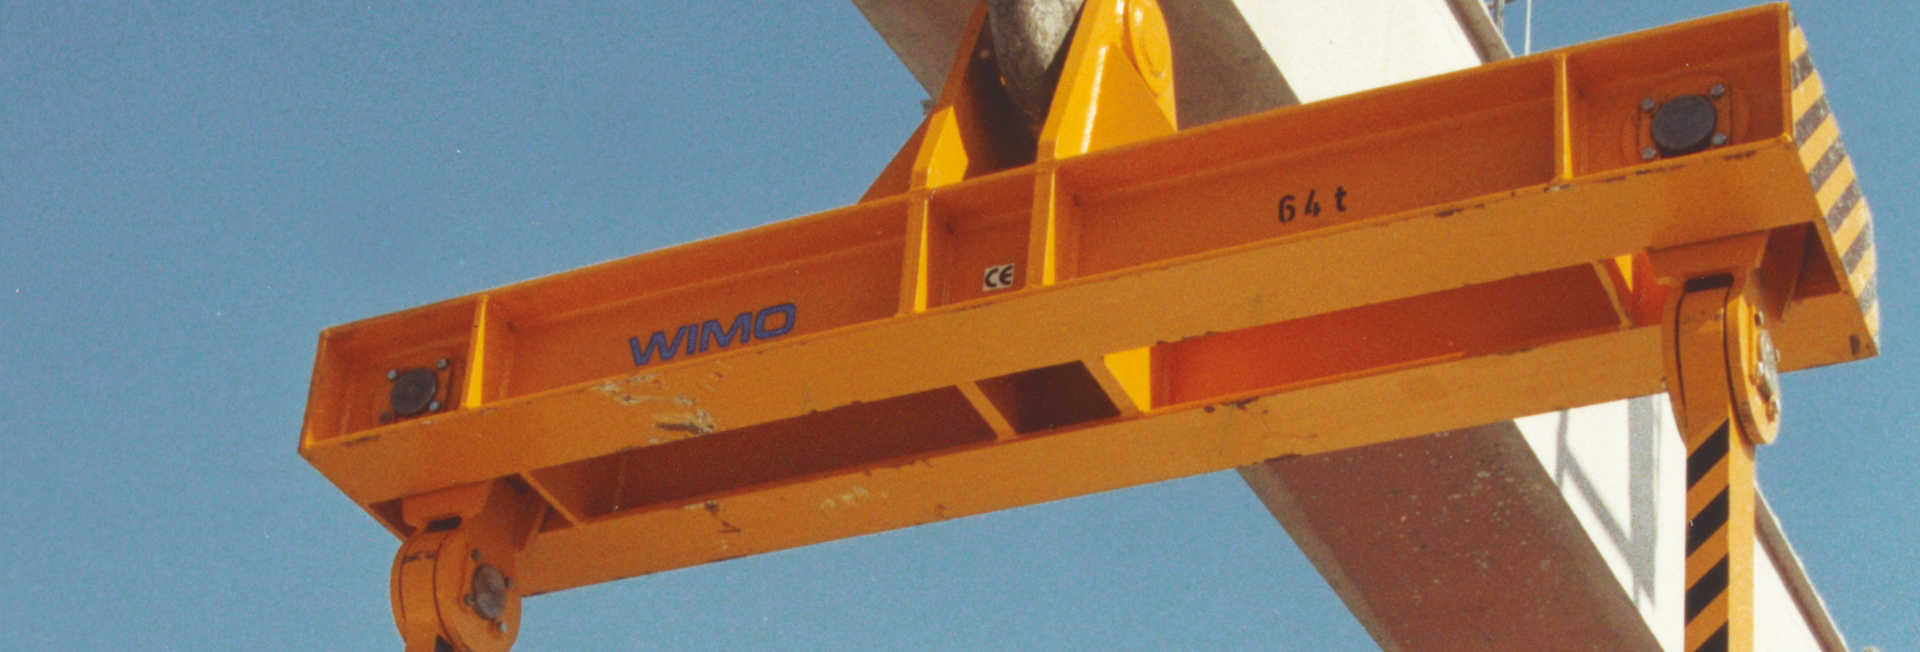 Wimo Spreaders